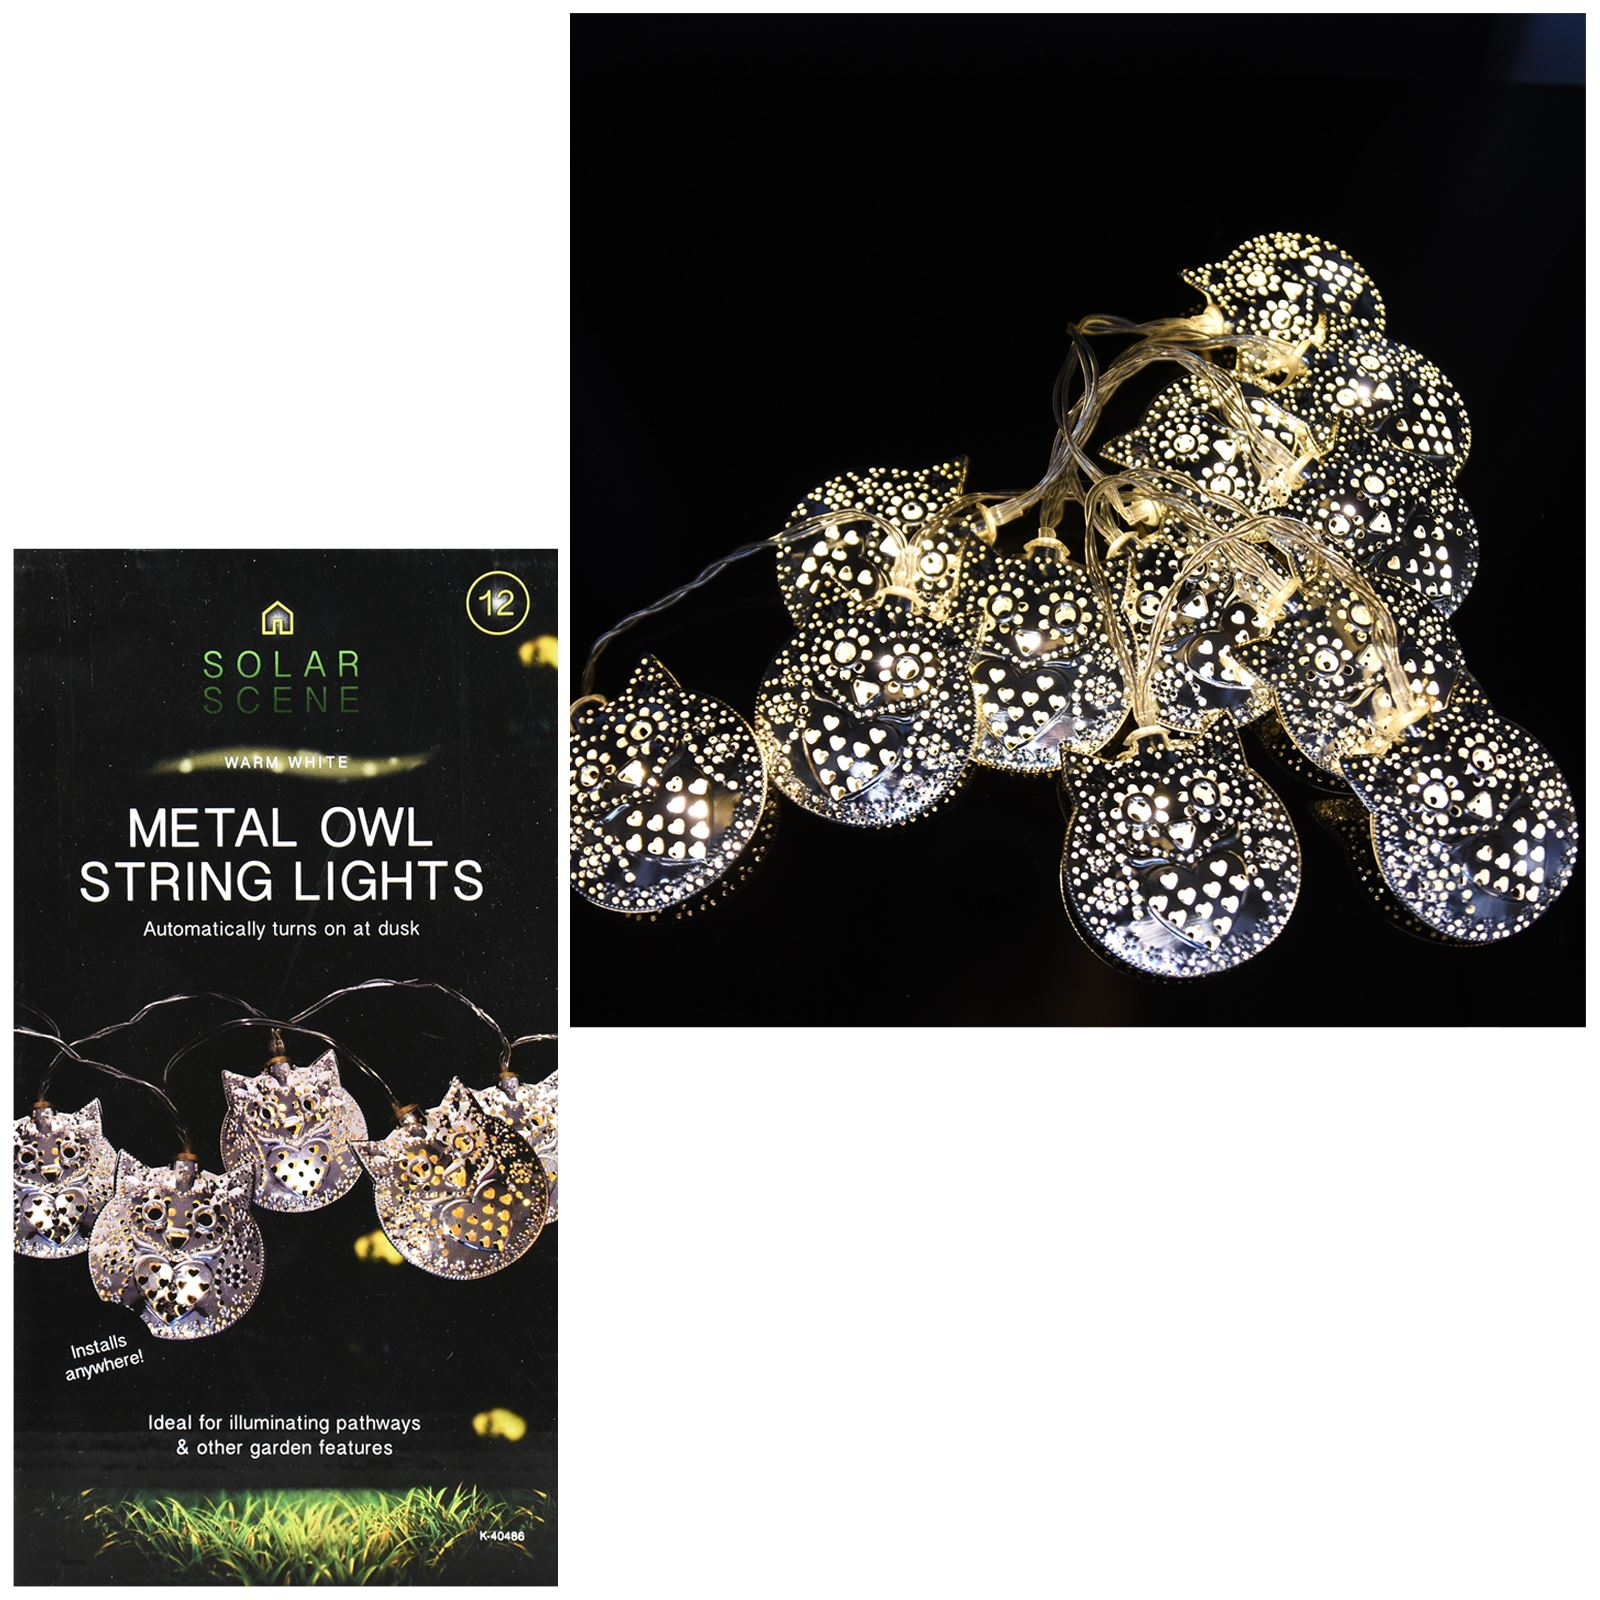 Metal Globe String Lights : 12 Led Solar Garden Lights String Outdoor Fairy Metal Globe Ball Owl Round New eBay